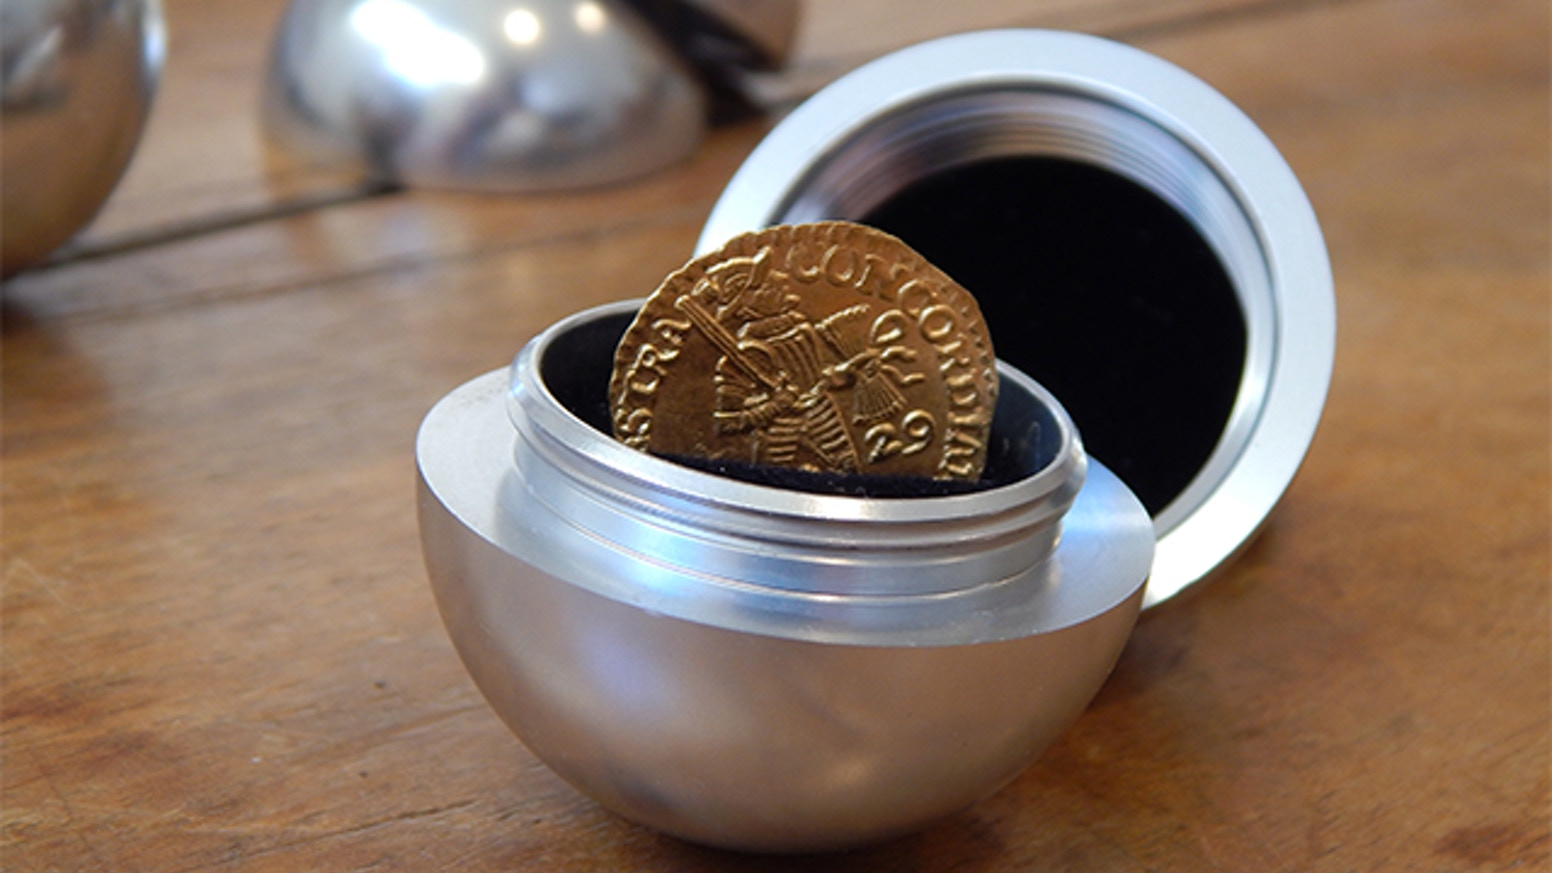 The Orb is a unique precision machined spherical keepsake container.